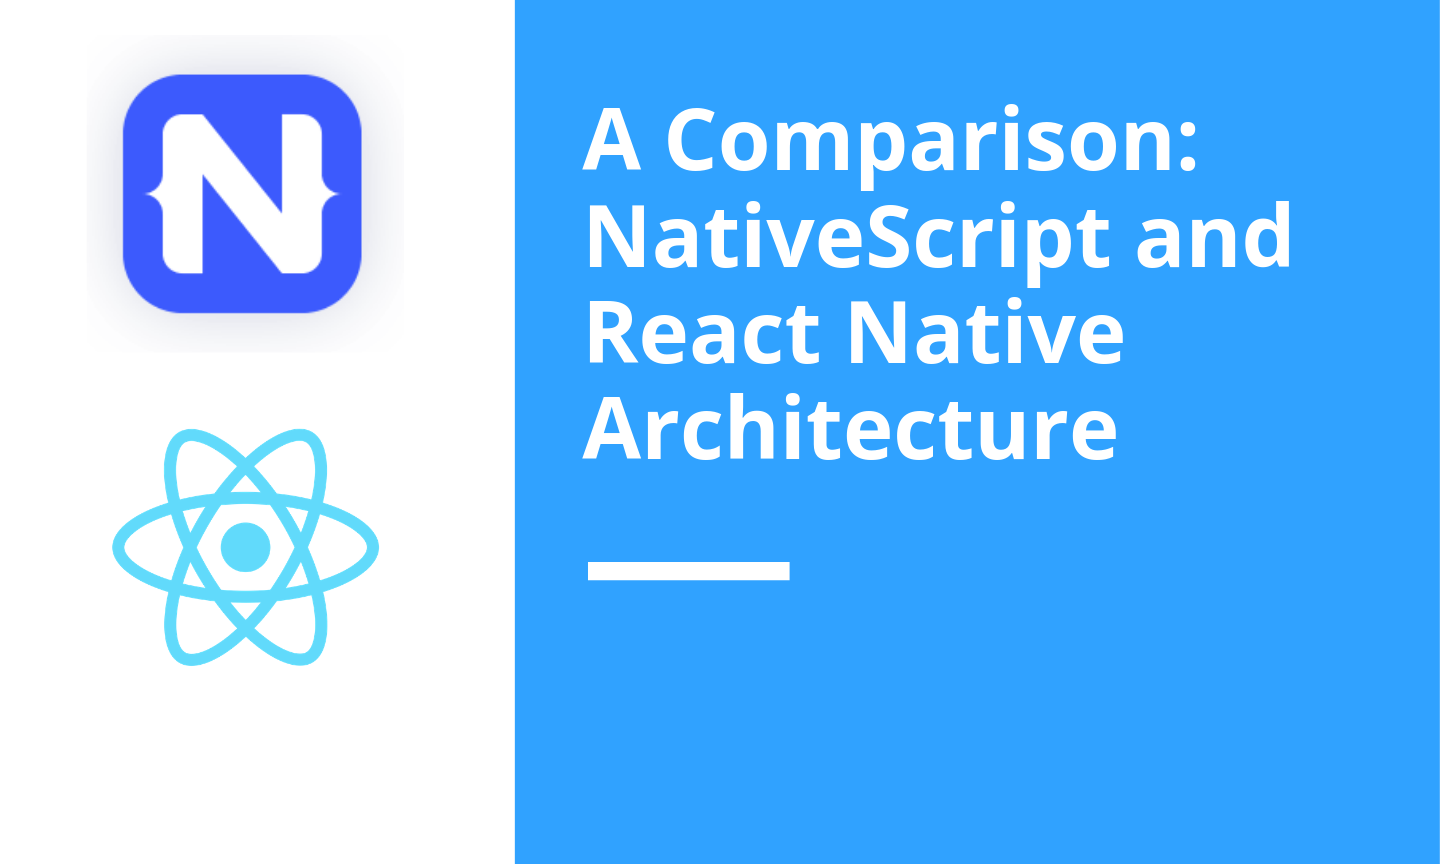 A close comparison over React Native and NativeScript Architecture